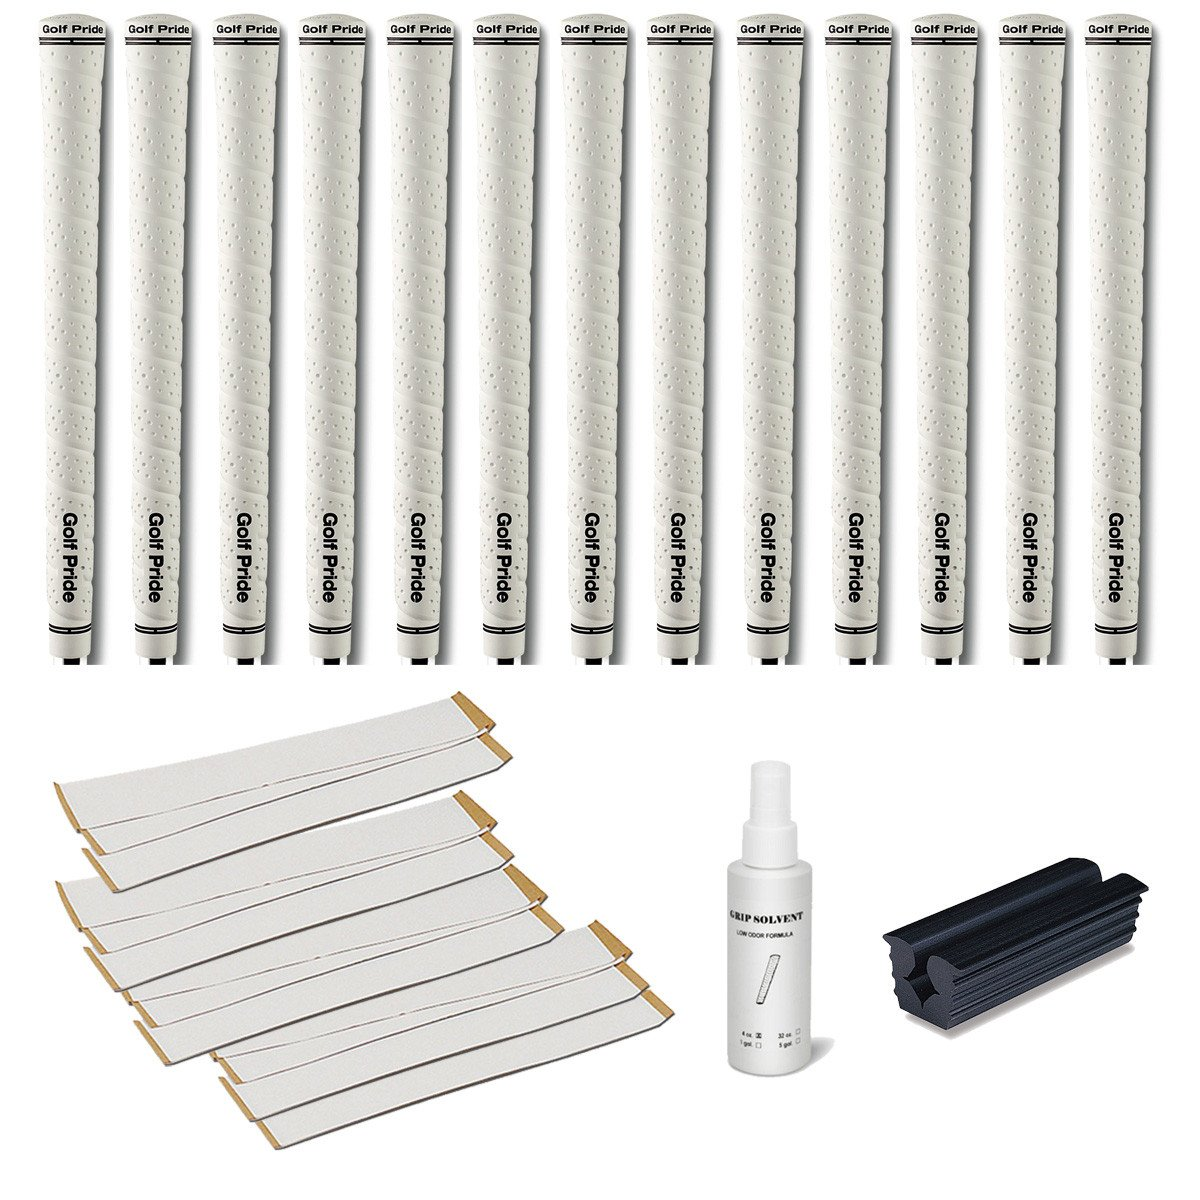 Golf Pride Tour Wrap 2G Midsize White - 13 pc Golf Grip Kit (with Tape, Solvent, Vise clamp)